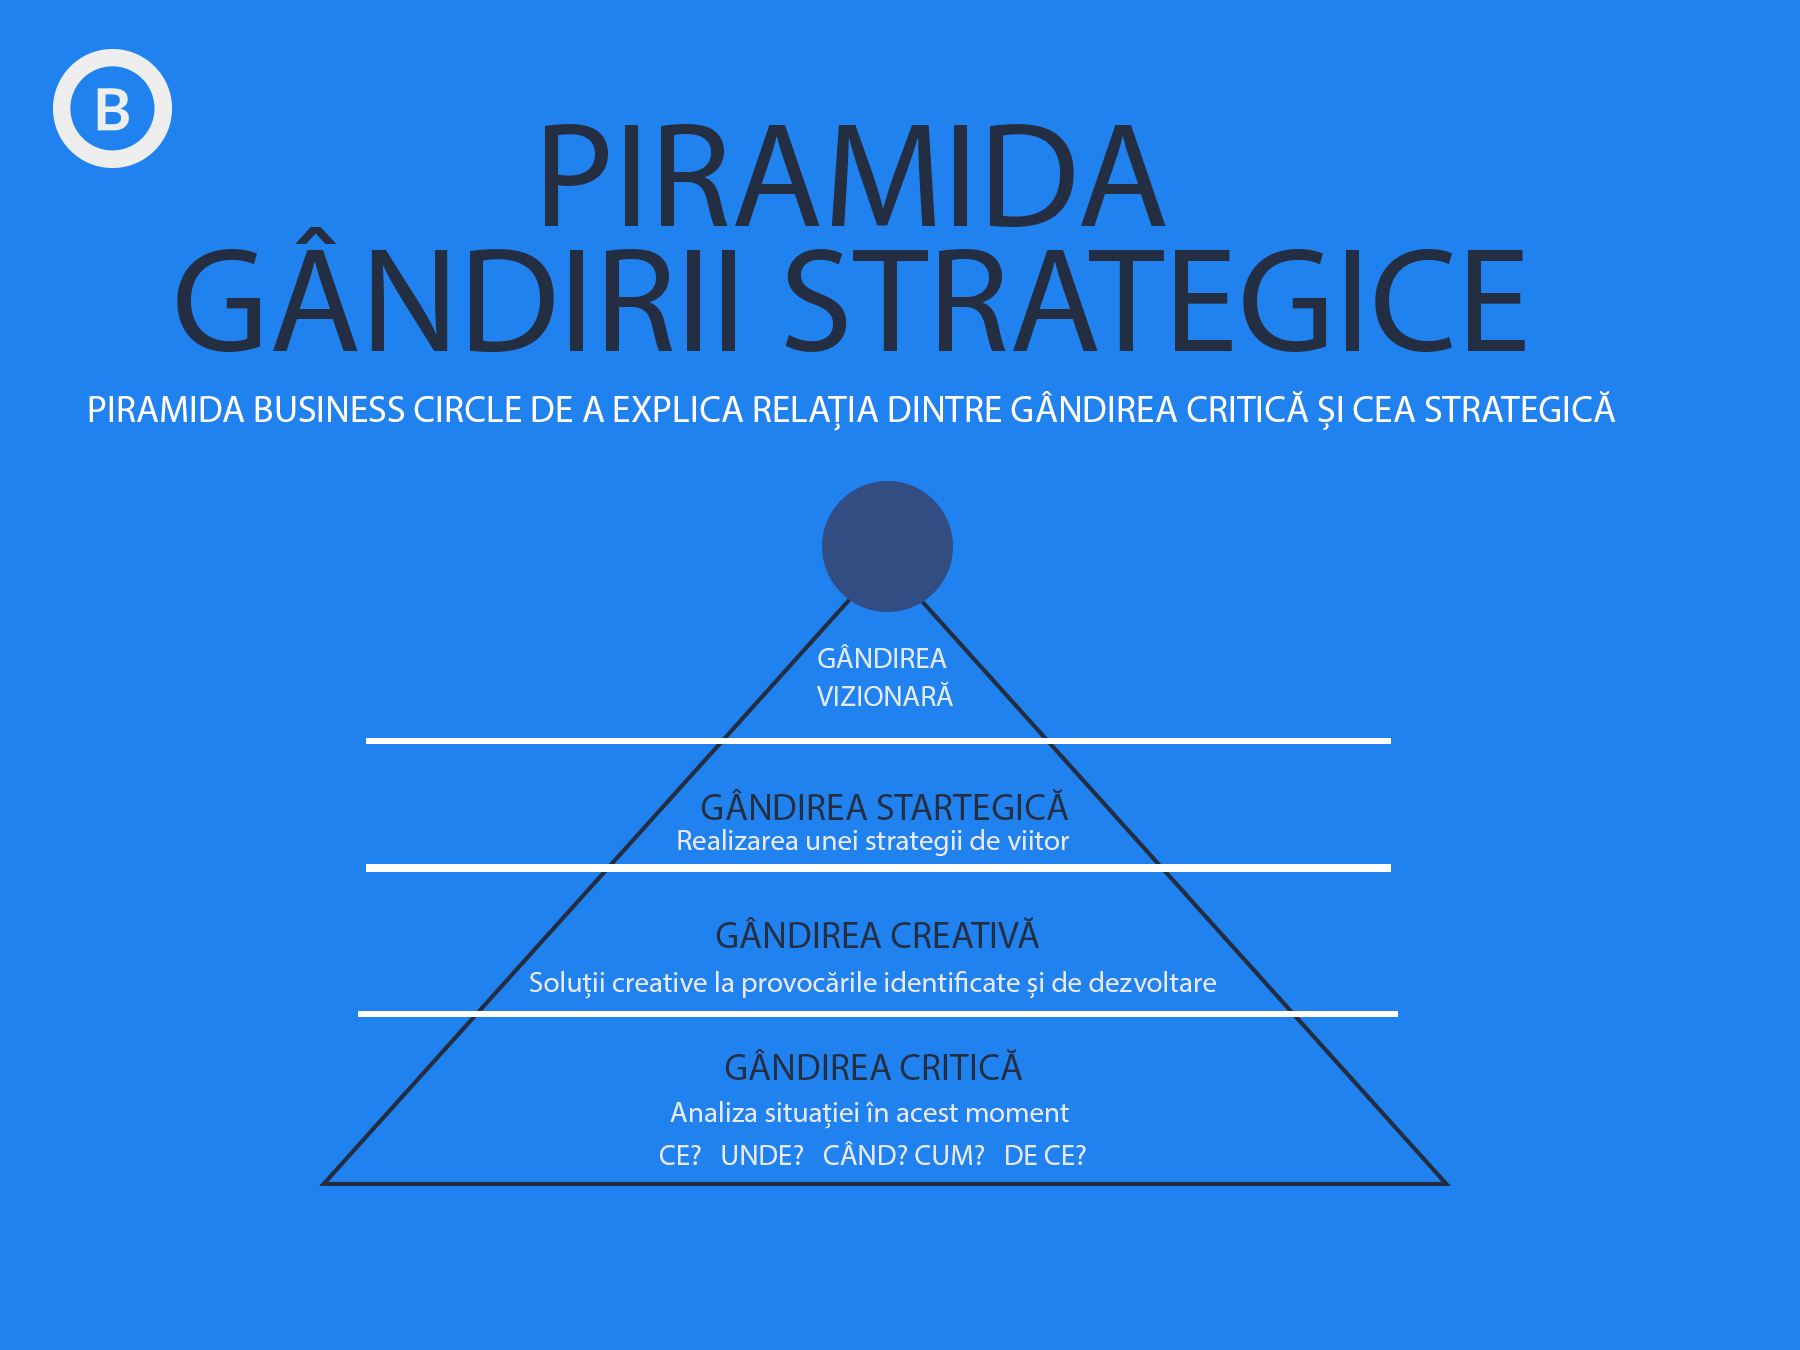 Piramida Gândirii Strategice a Business Circle